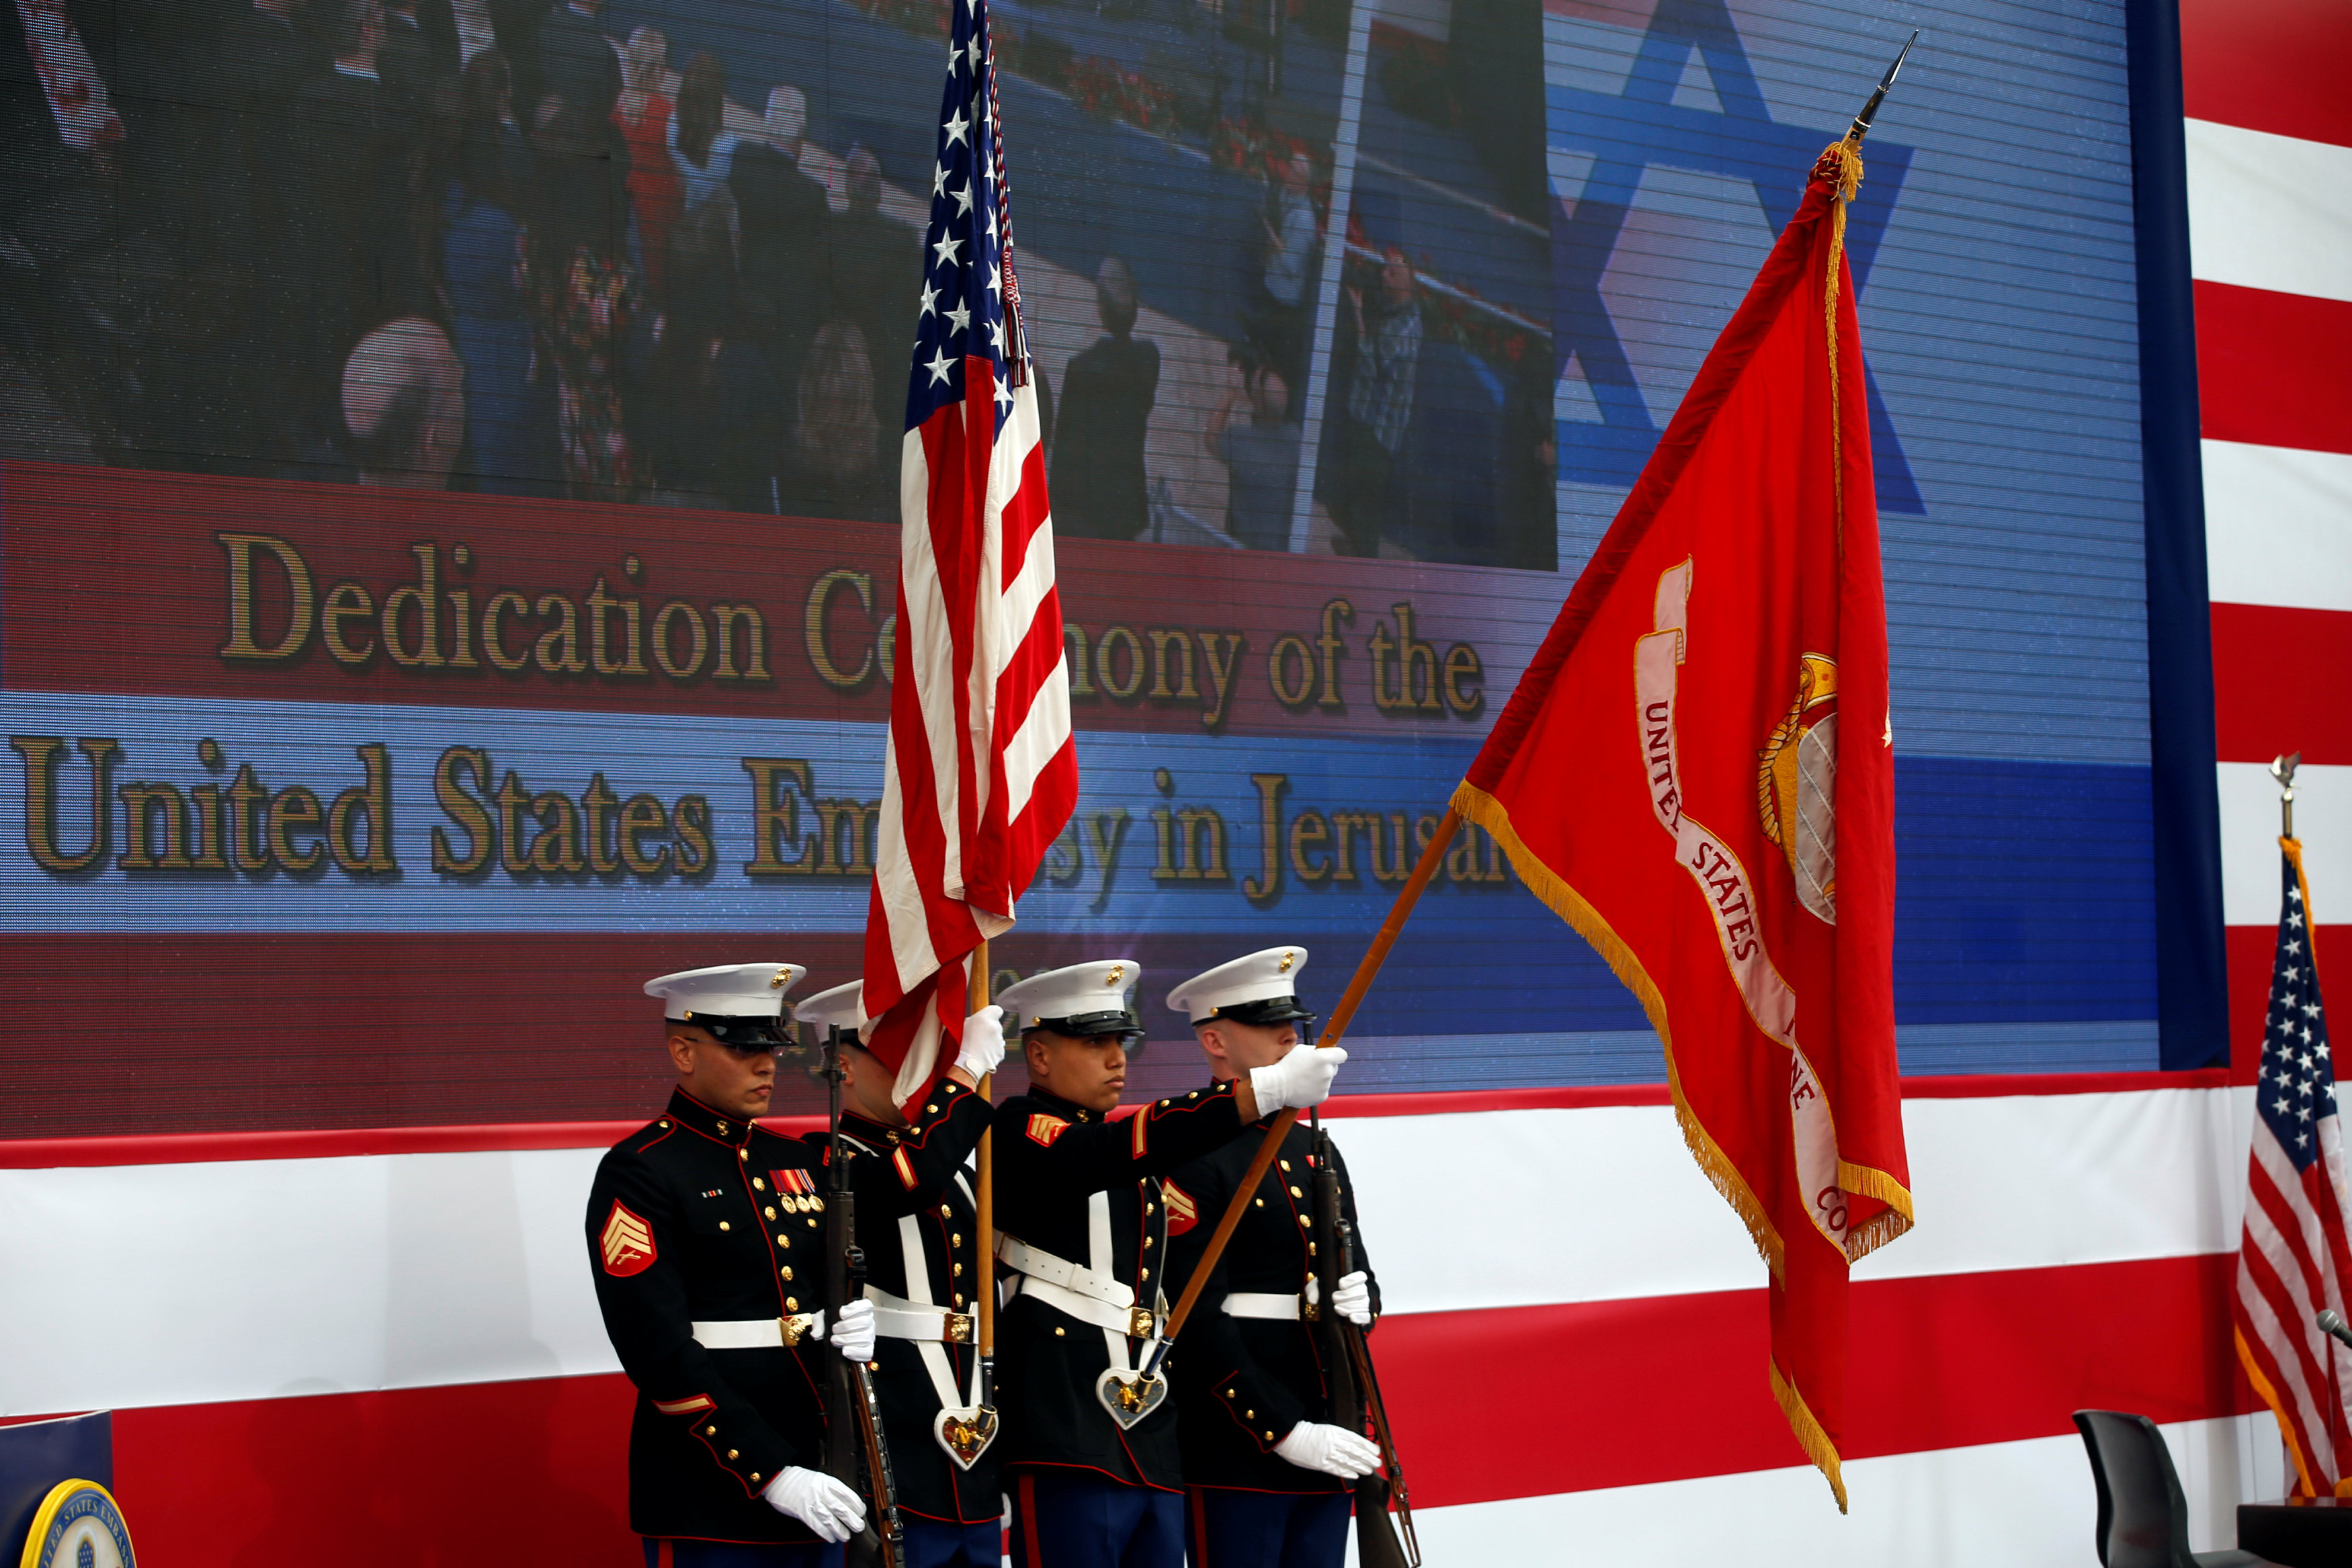 U.S. marines take part in the dedication ceremony of the new U.S. embassy in Jerusalem, May 14, 2018. REUTERS/Ronen Zvulun